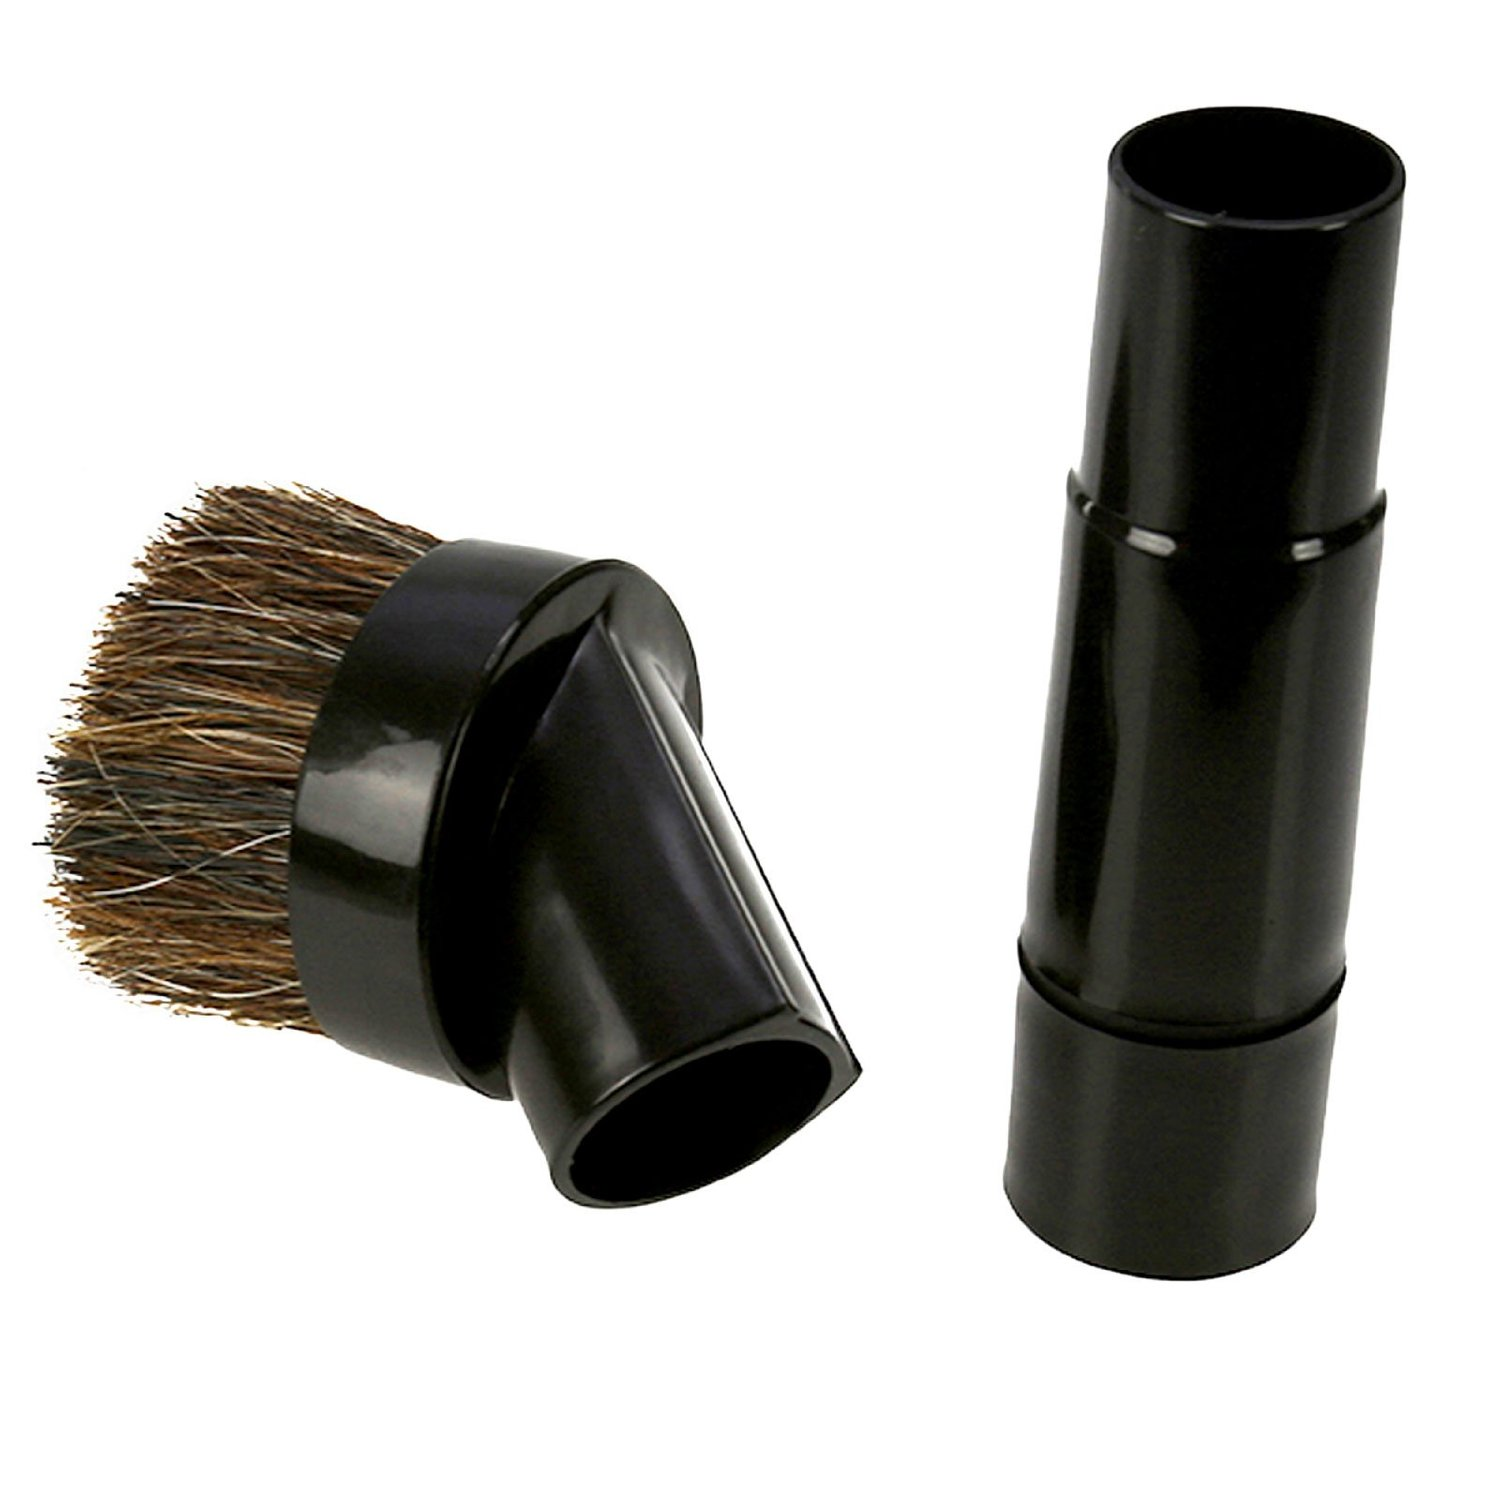 First4Spares Premium Soft Dusting Brush and Adapter Set for Upright & Canister Vacuum Cleaners